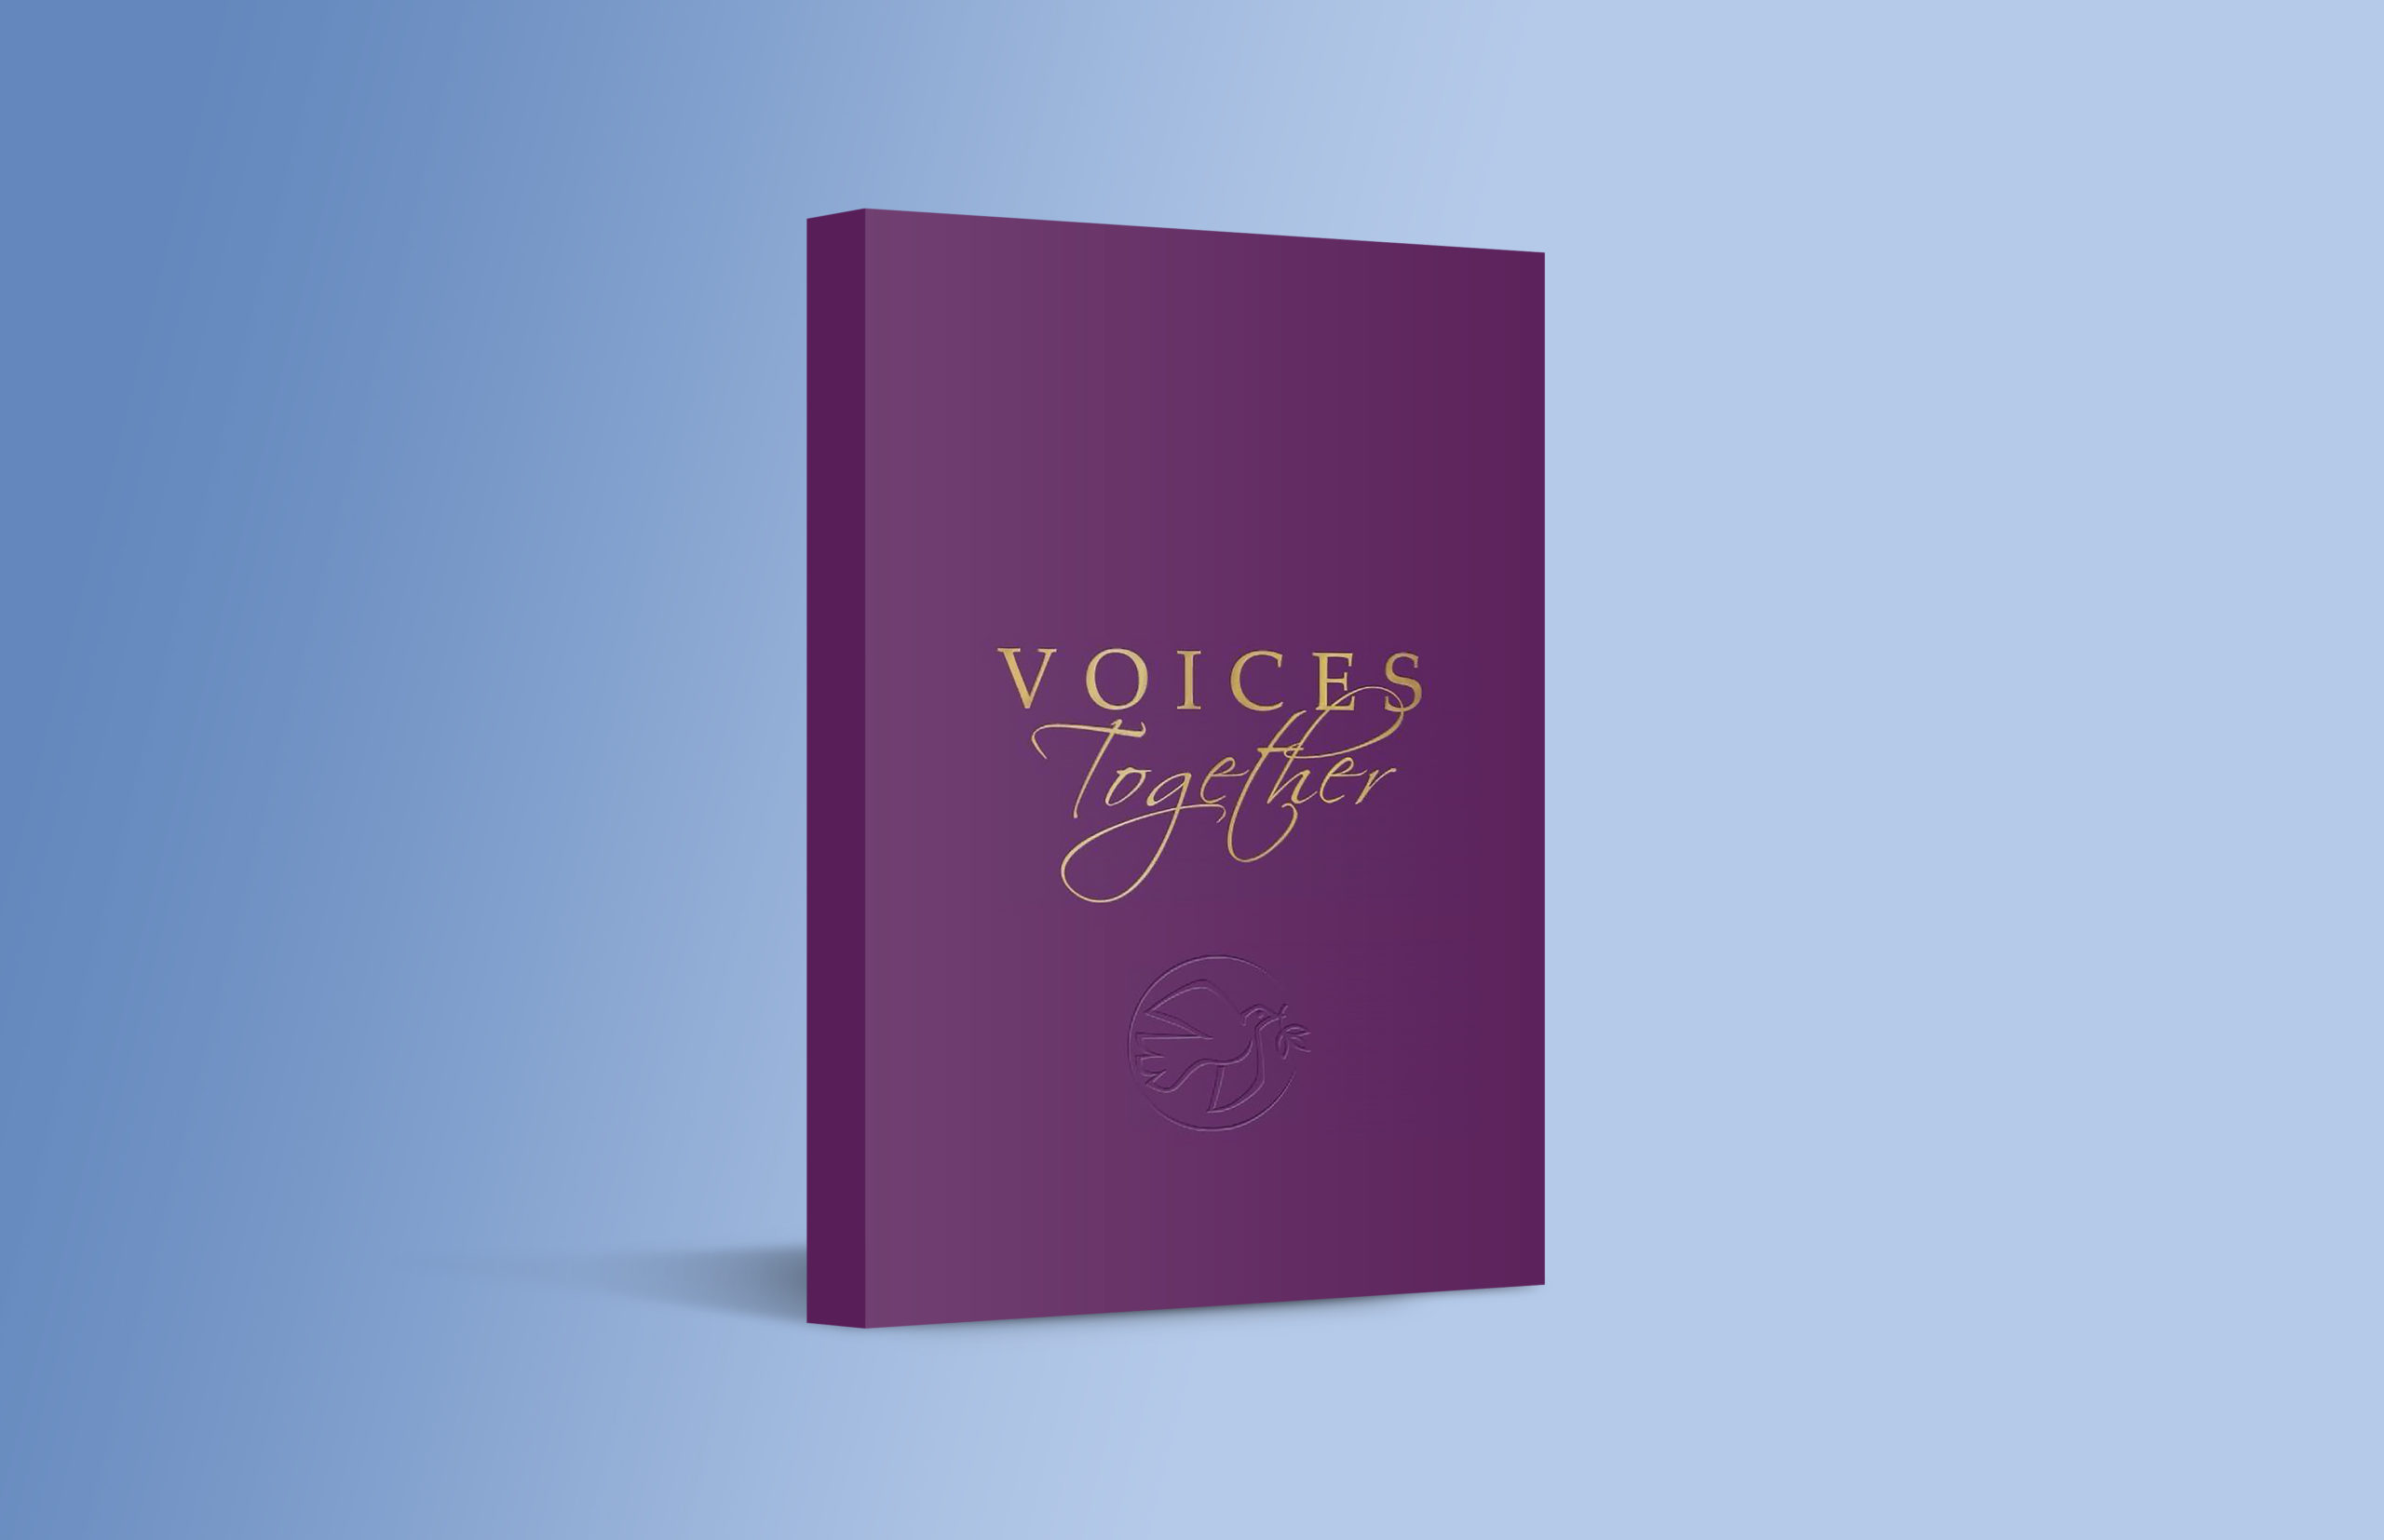 The team behind Voices Together has created online resources to help congregations introduce the new hymnal.